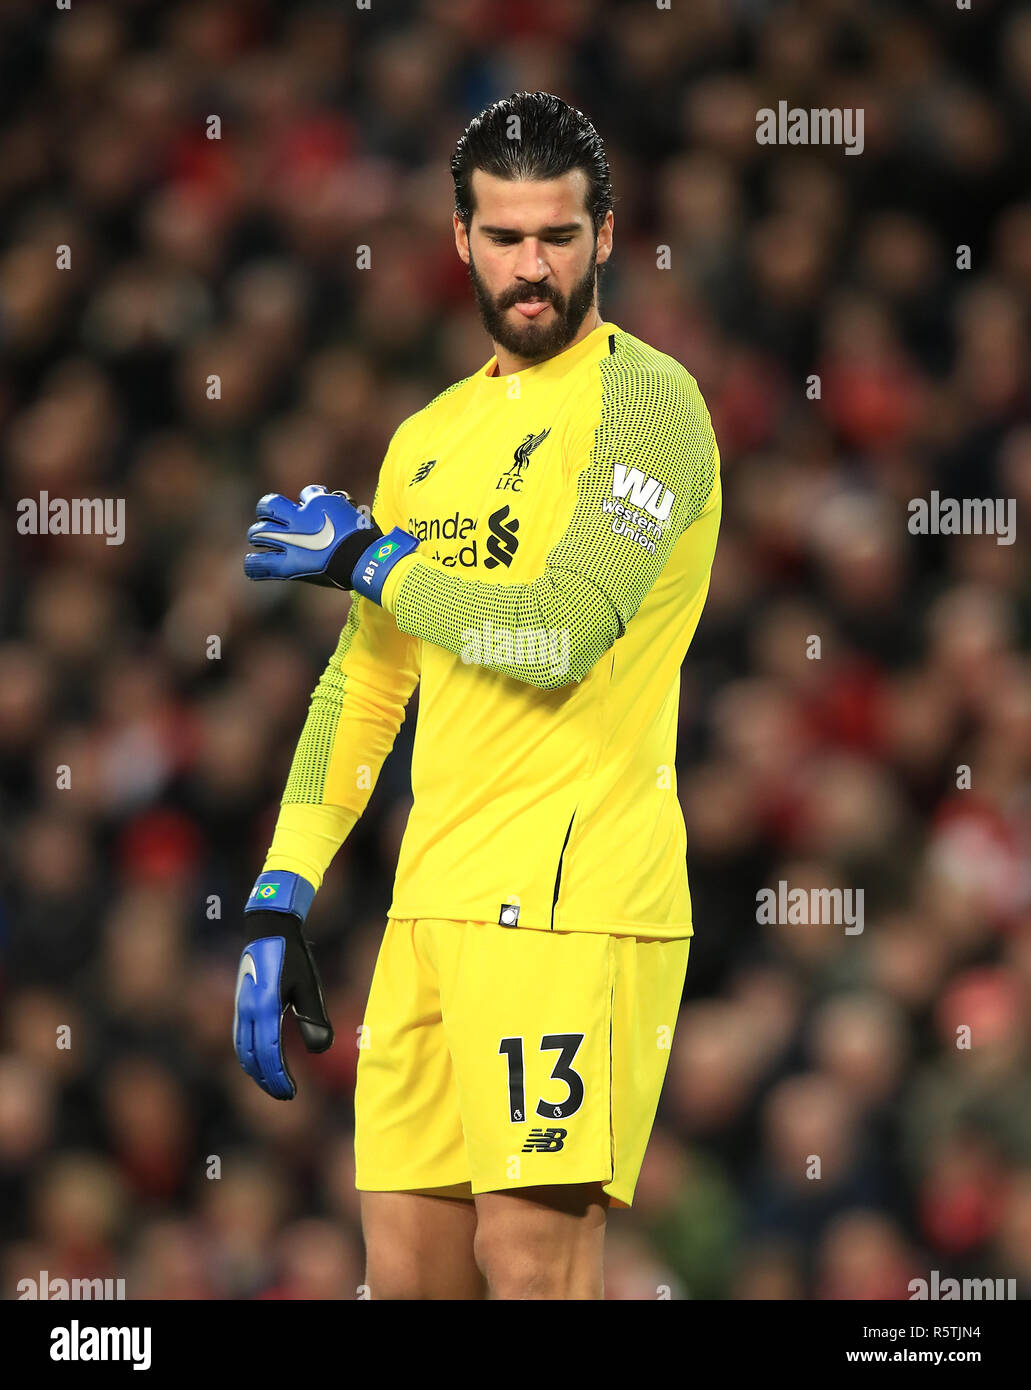 ca535b95c82 Liverpool goalkeeper Alisson Becker during the Premier League match at  Anfield